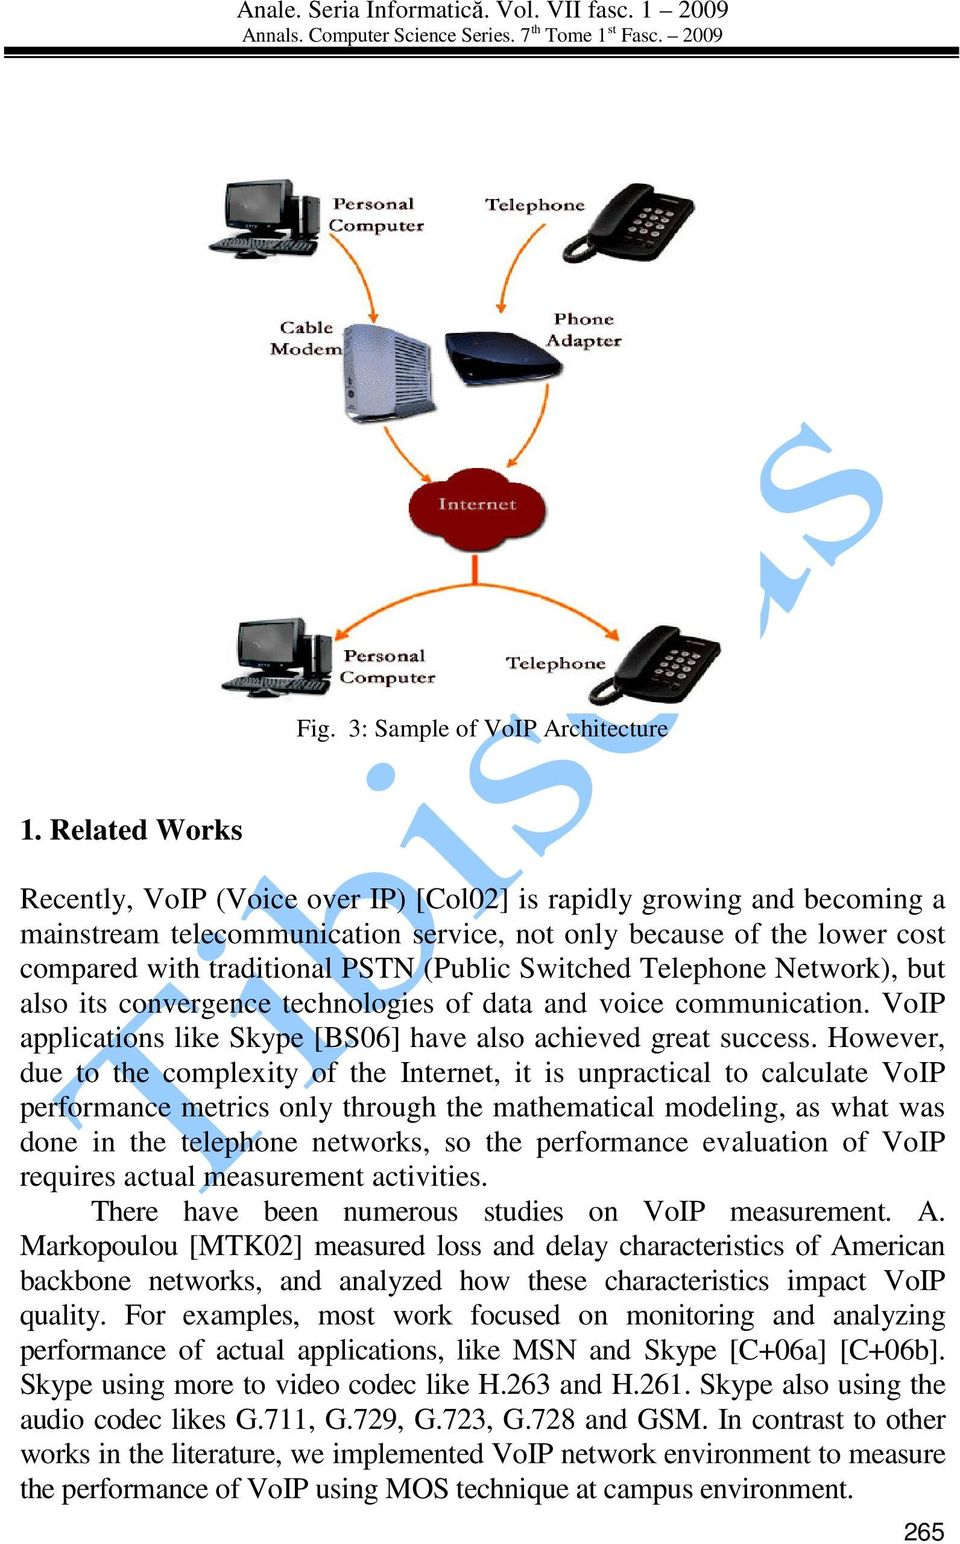 Switched Telephone Network), but also its convergence technologies of data and voice communication. VoIP applications like Skype [BS06] have also achieved great success.